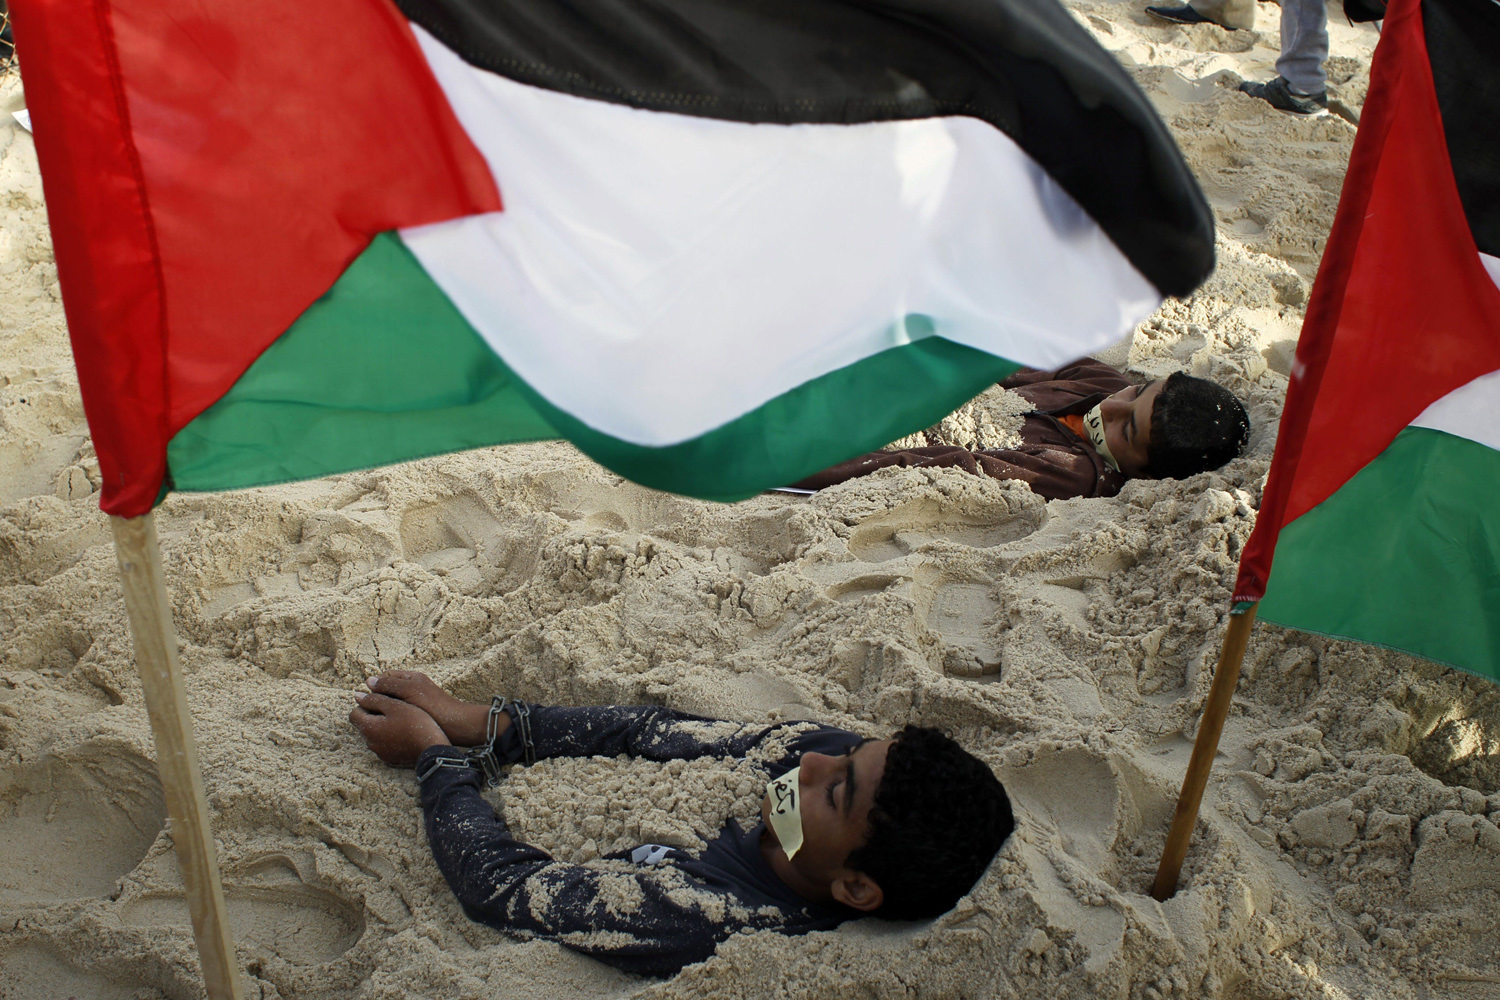 Palestinian children lie in the sand with their hands clasped next to their national flags during a rally against the siege on the impoverished Hamas-run Gaza Strip in the coastal town of Rafah on March 7, 2014.